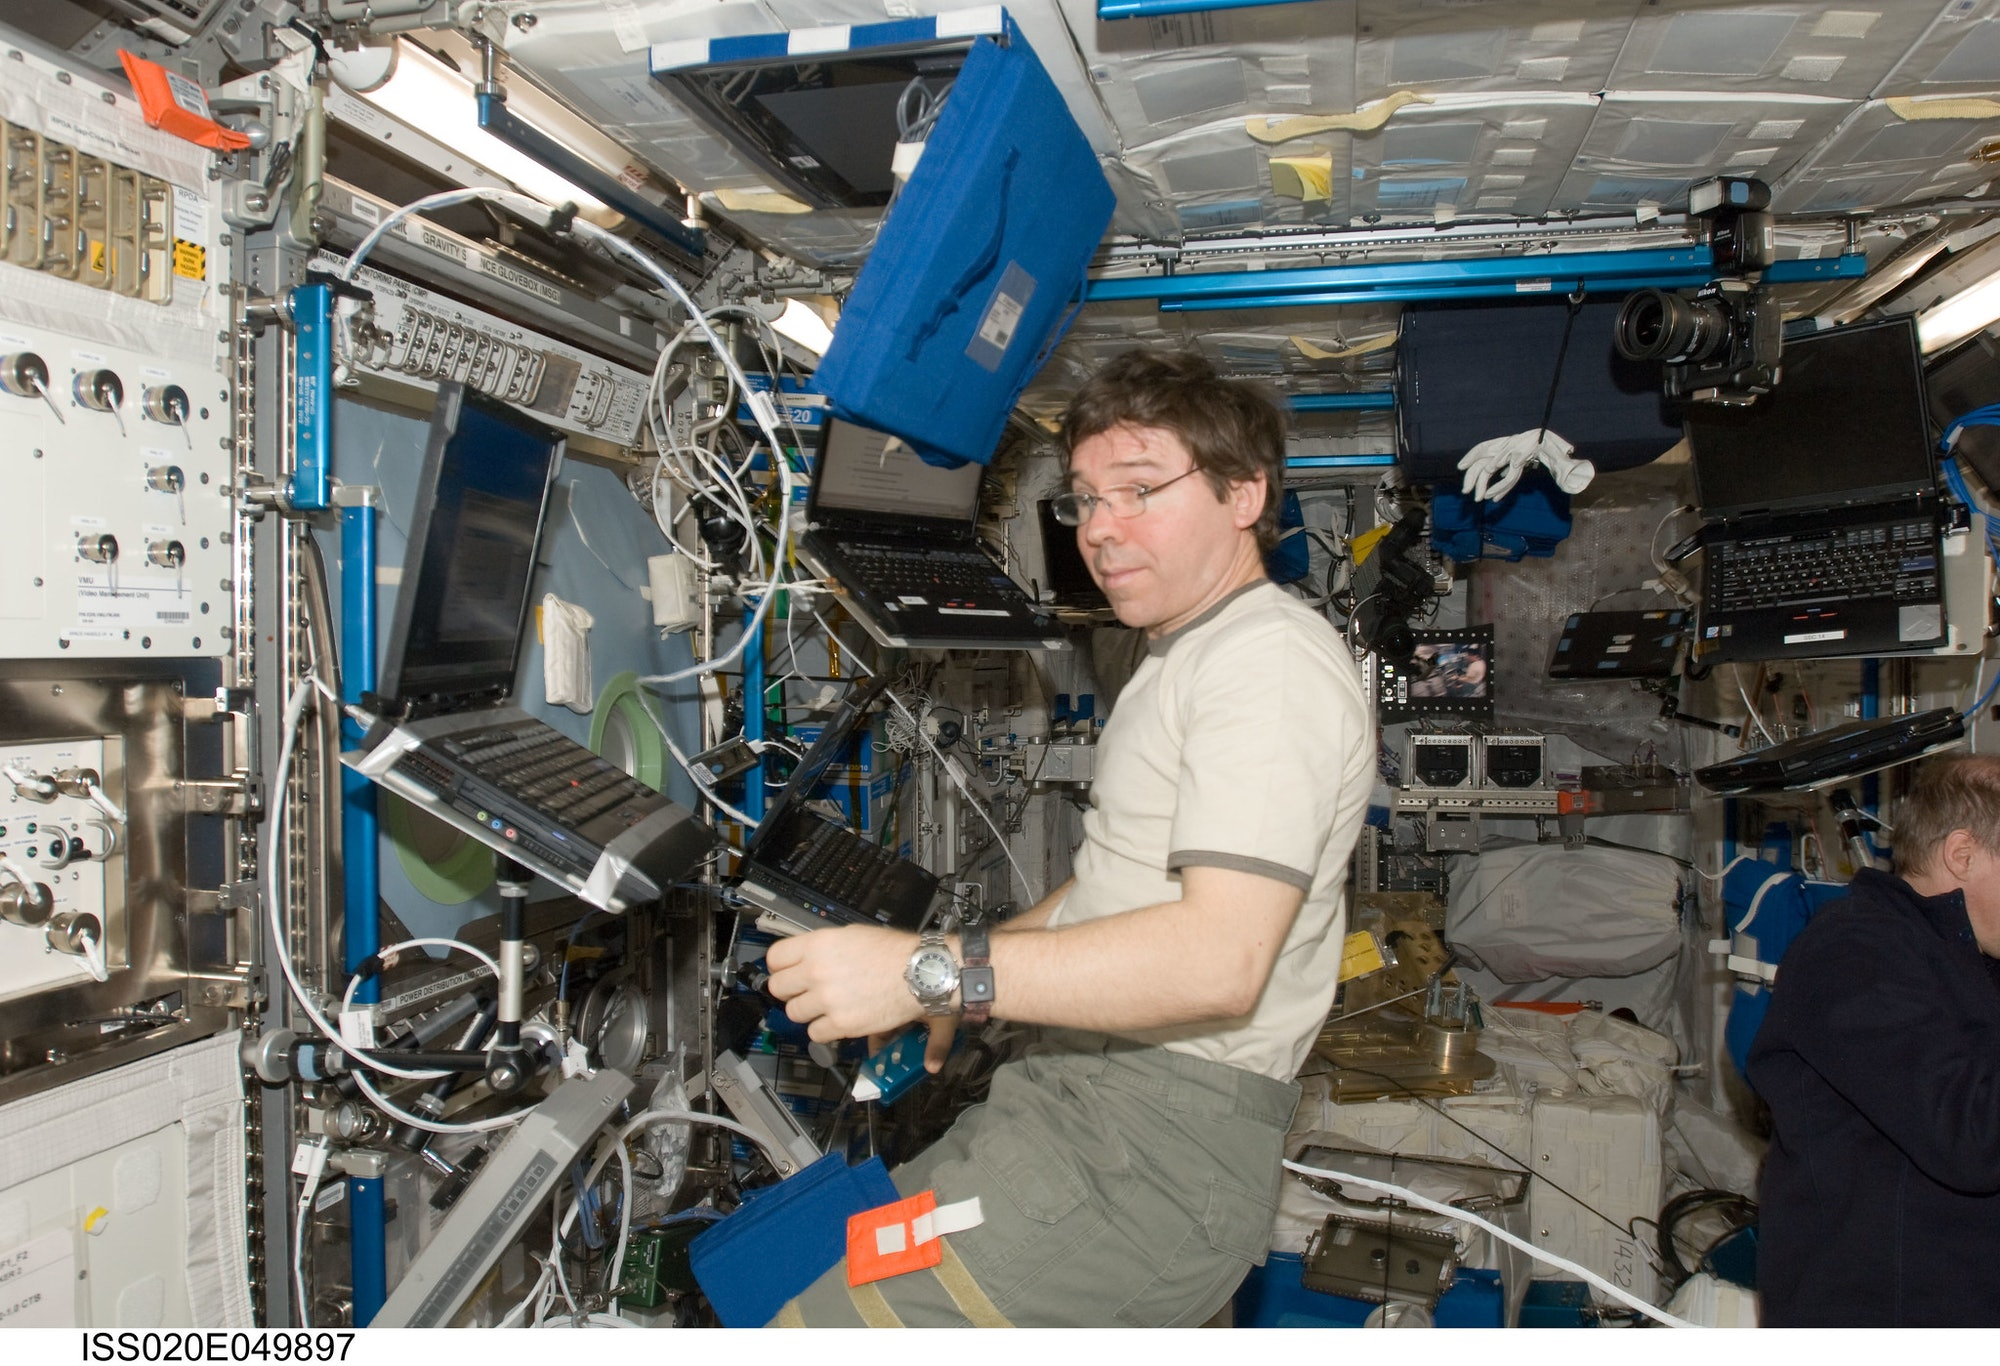 Michael Barratt on the ISS